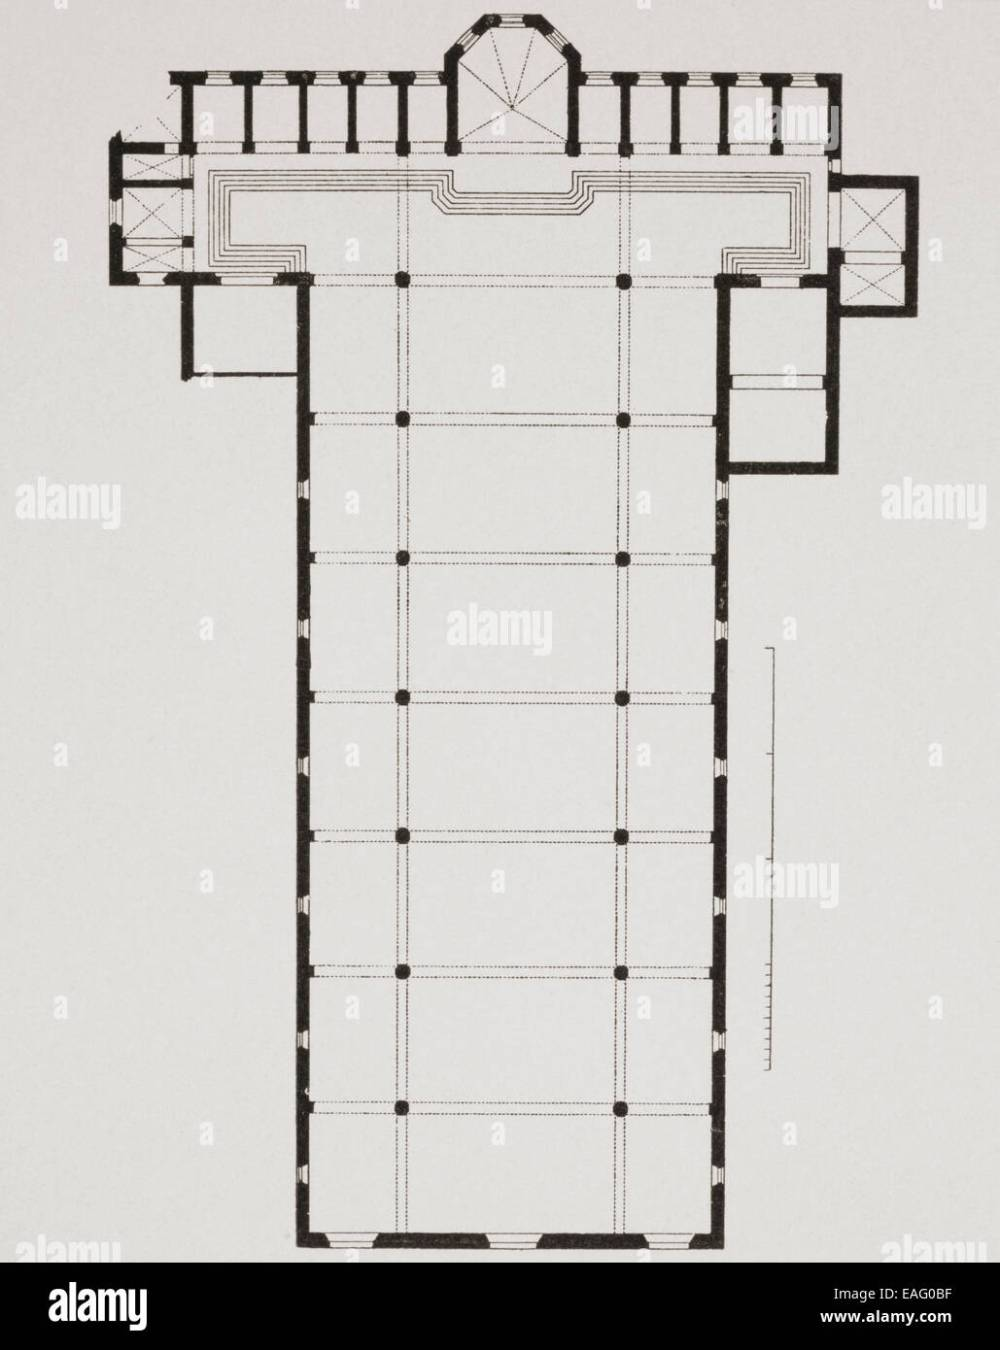 medium resolution of ground plan of the basilica di santa croce basilica of the holy cross florence italy